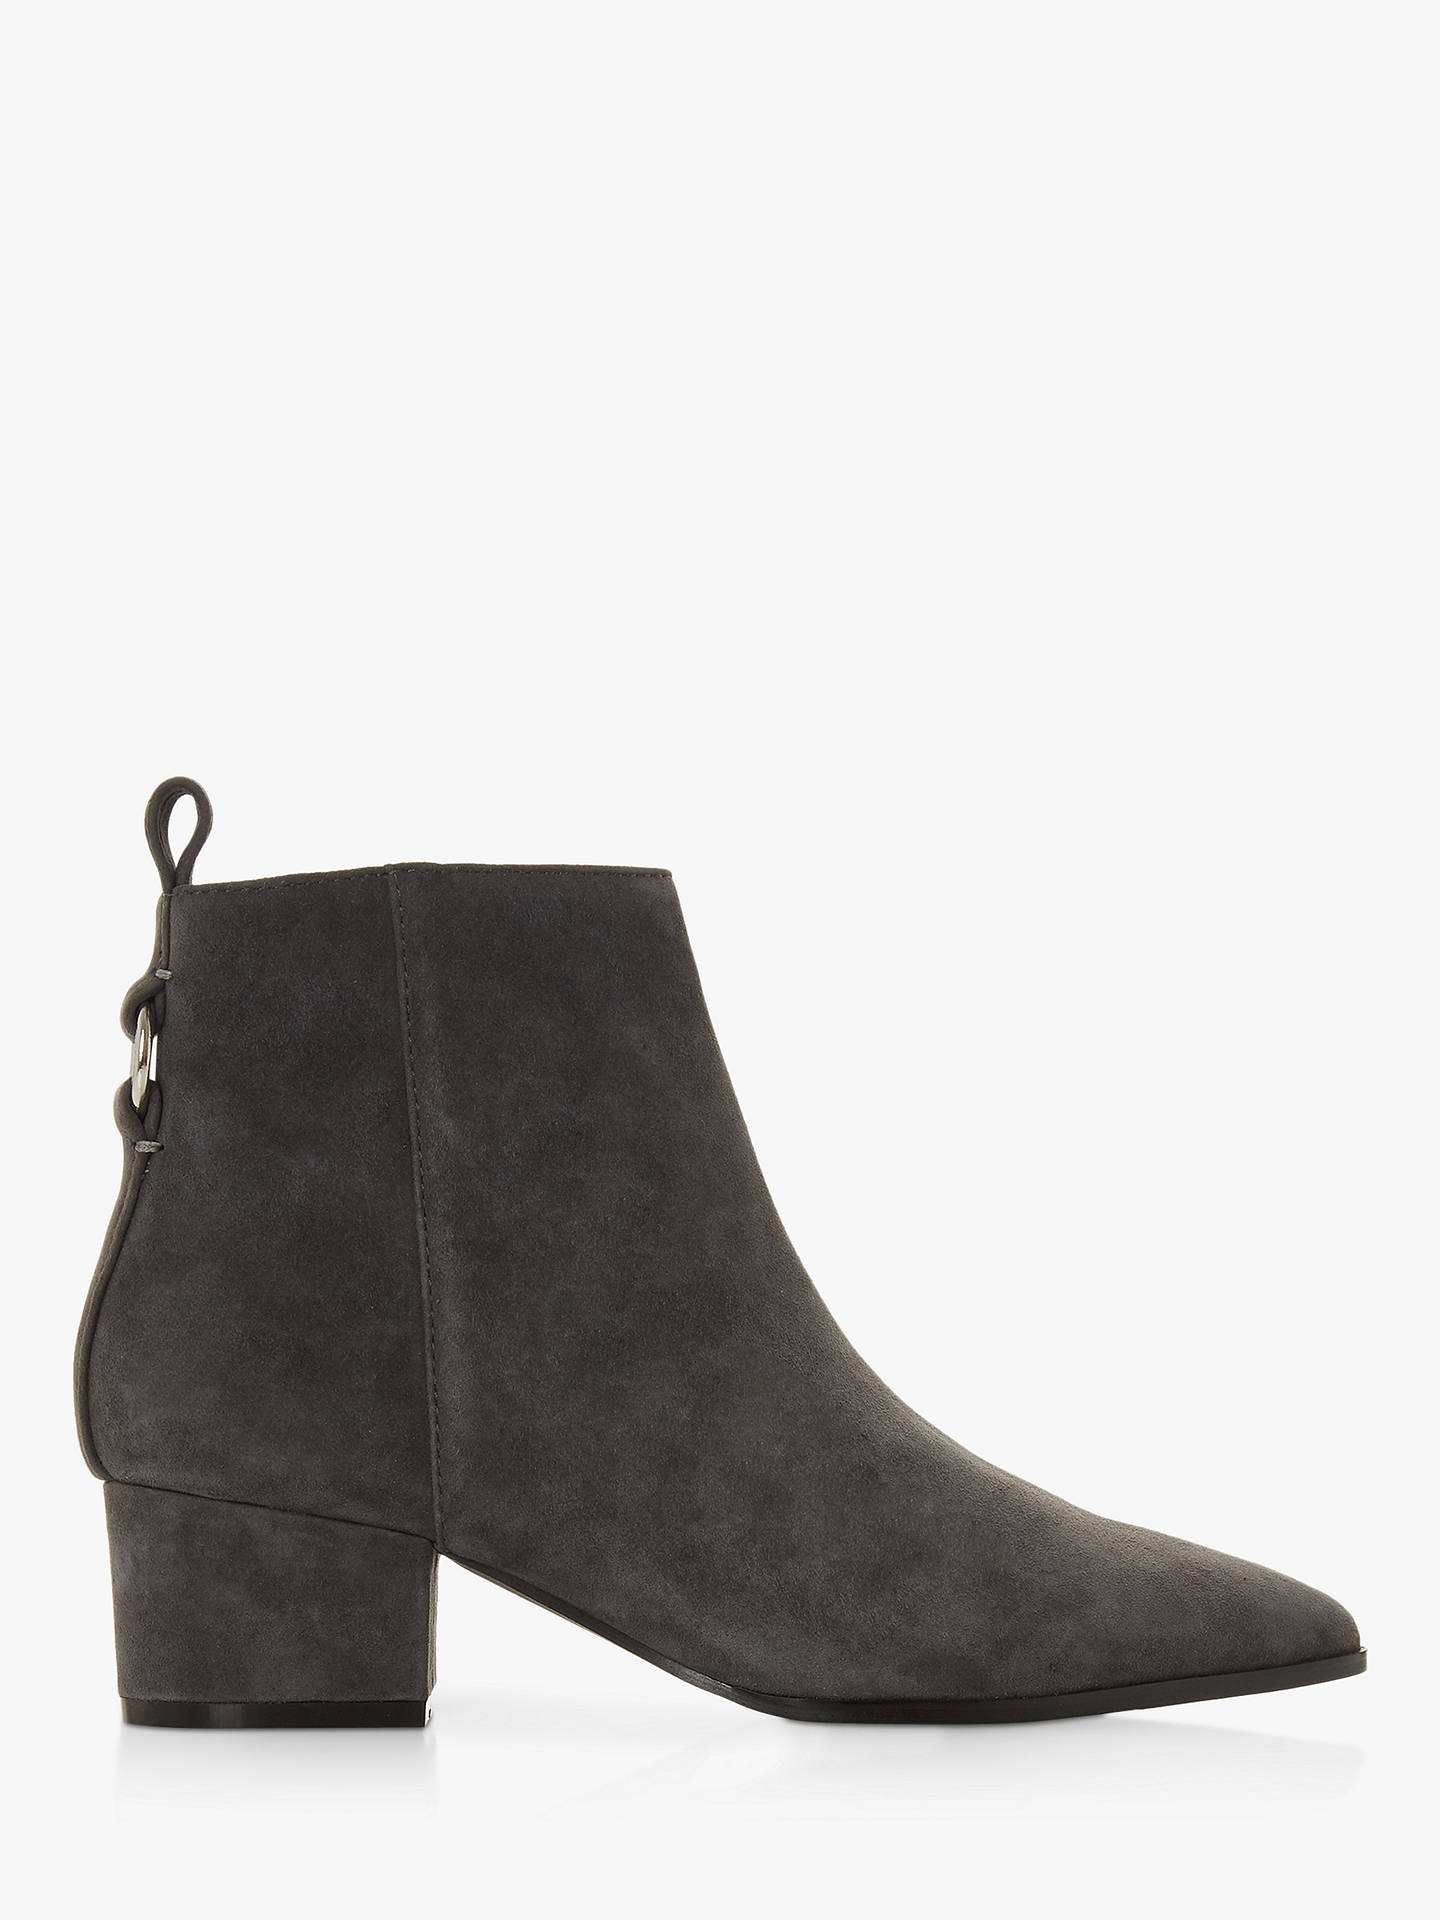 22073a4c24a Steve Madden Clover Side Zip Ankle Boots at John Lewis   Partners